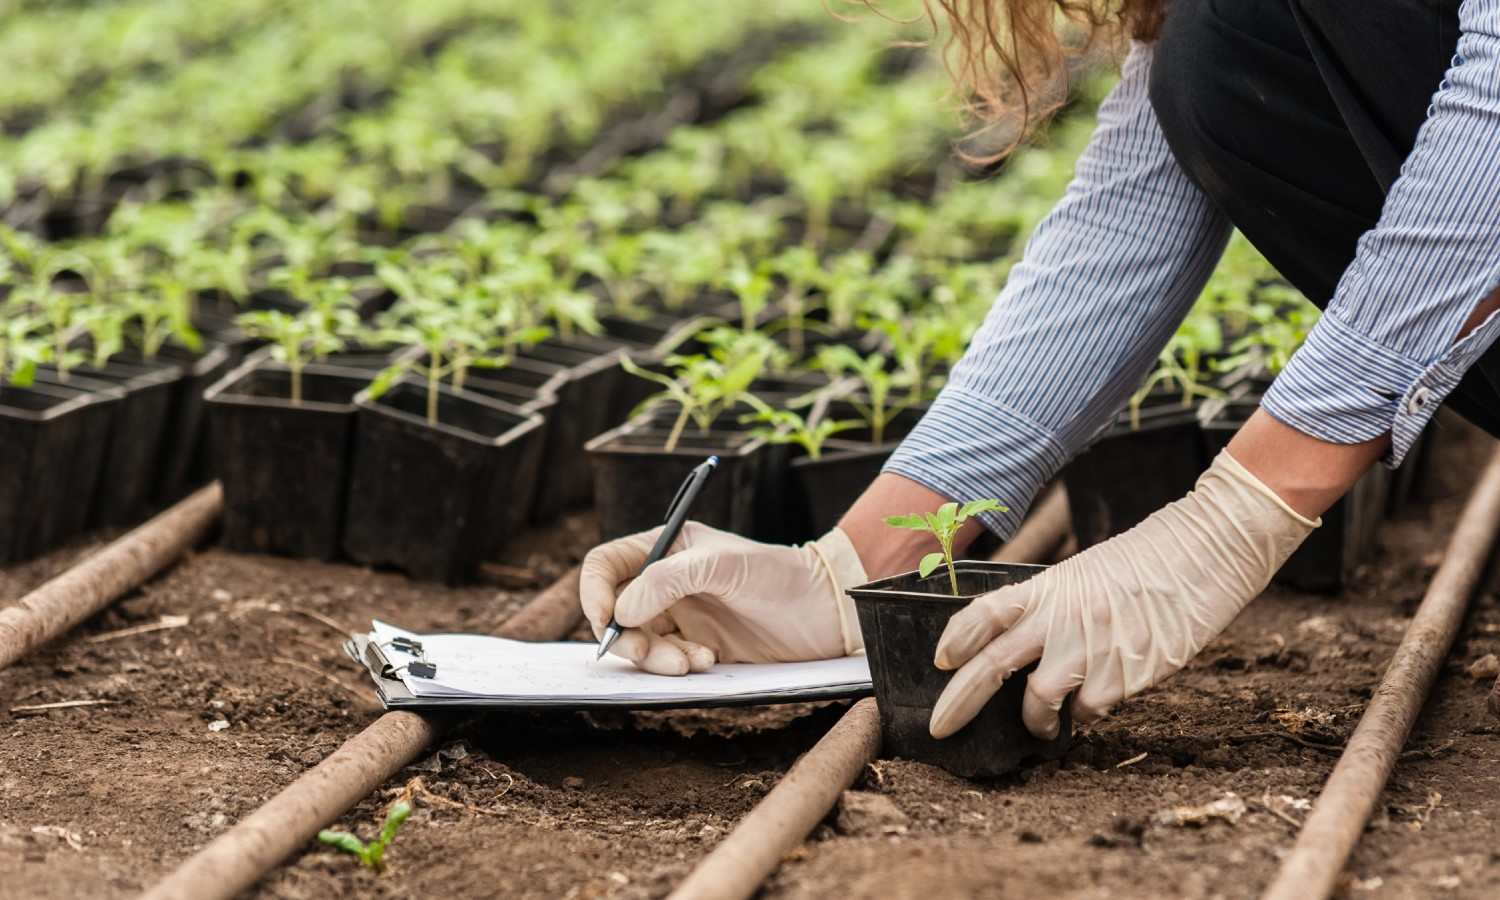 This World Soil Day, Food Tank is recognizing that healthy soil is important for more than just crops — soil can also trap carbon and combat climate change.